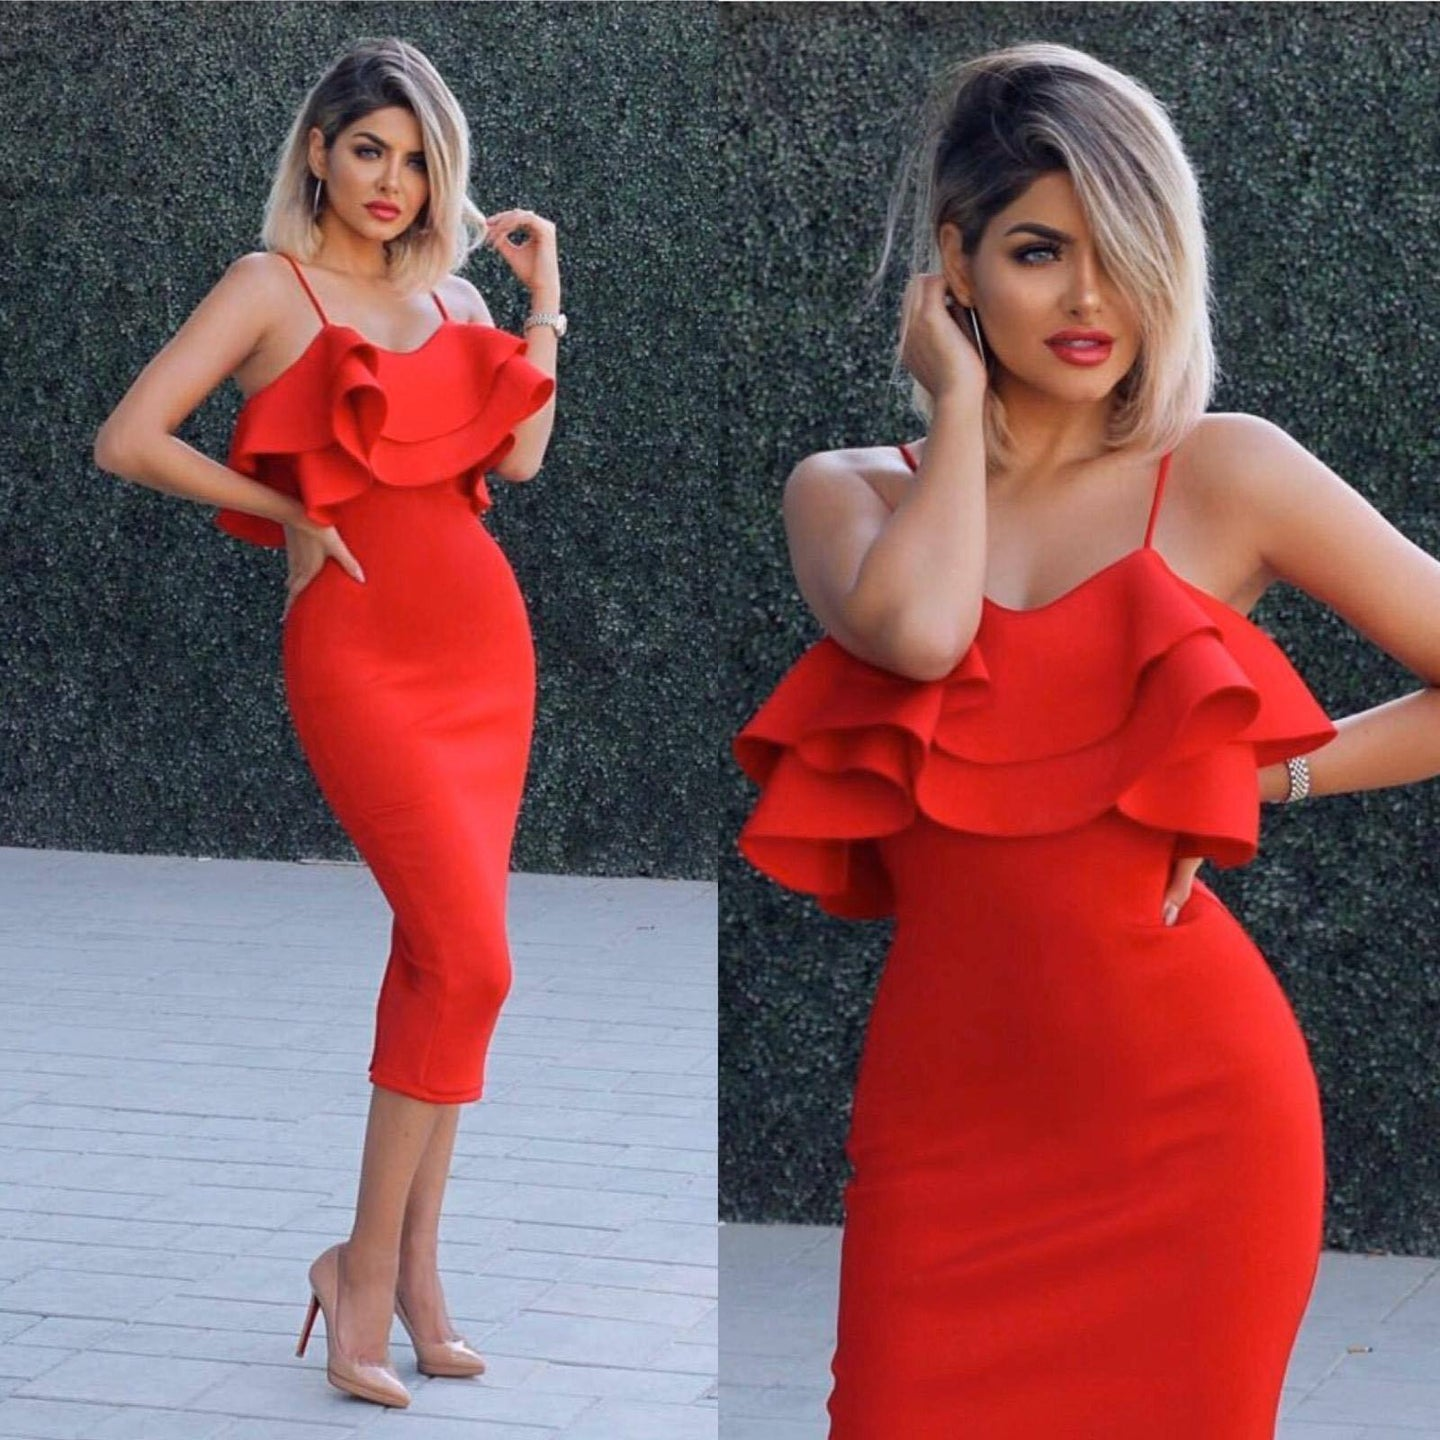 Women's Red Dress – Stylish Red Dress for Women